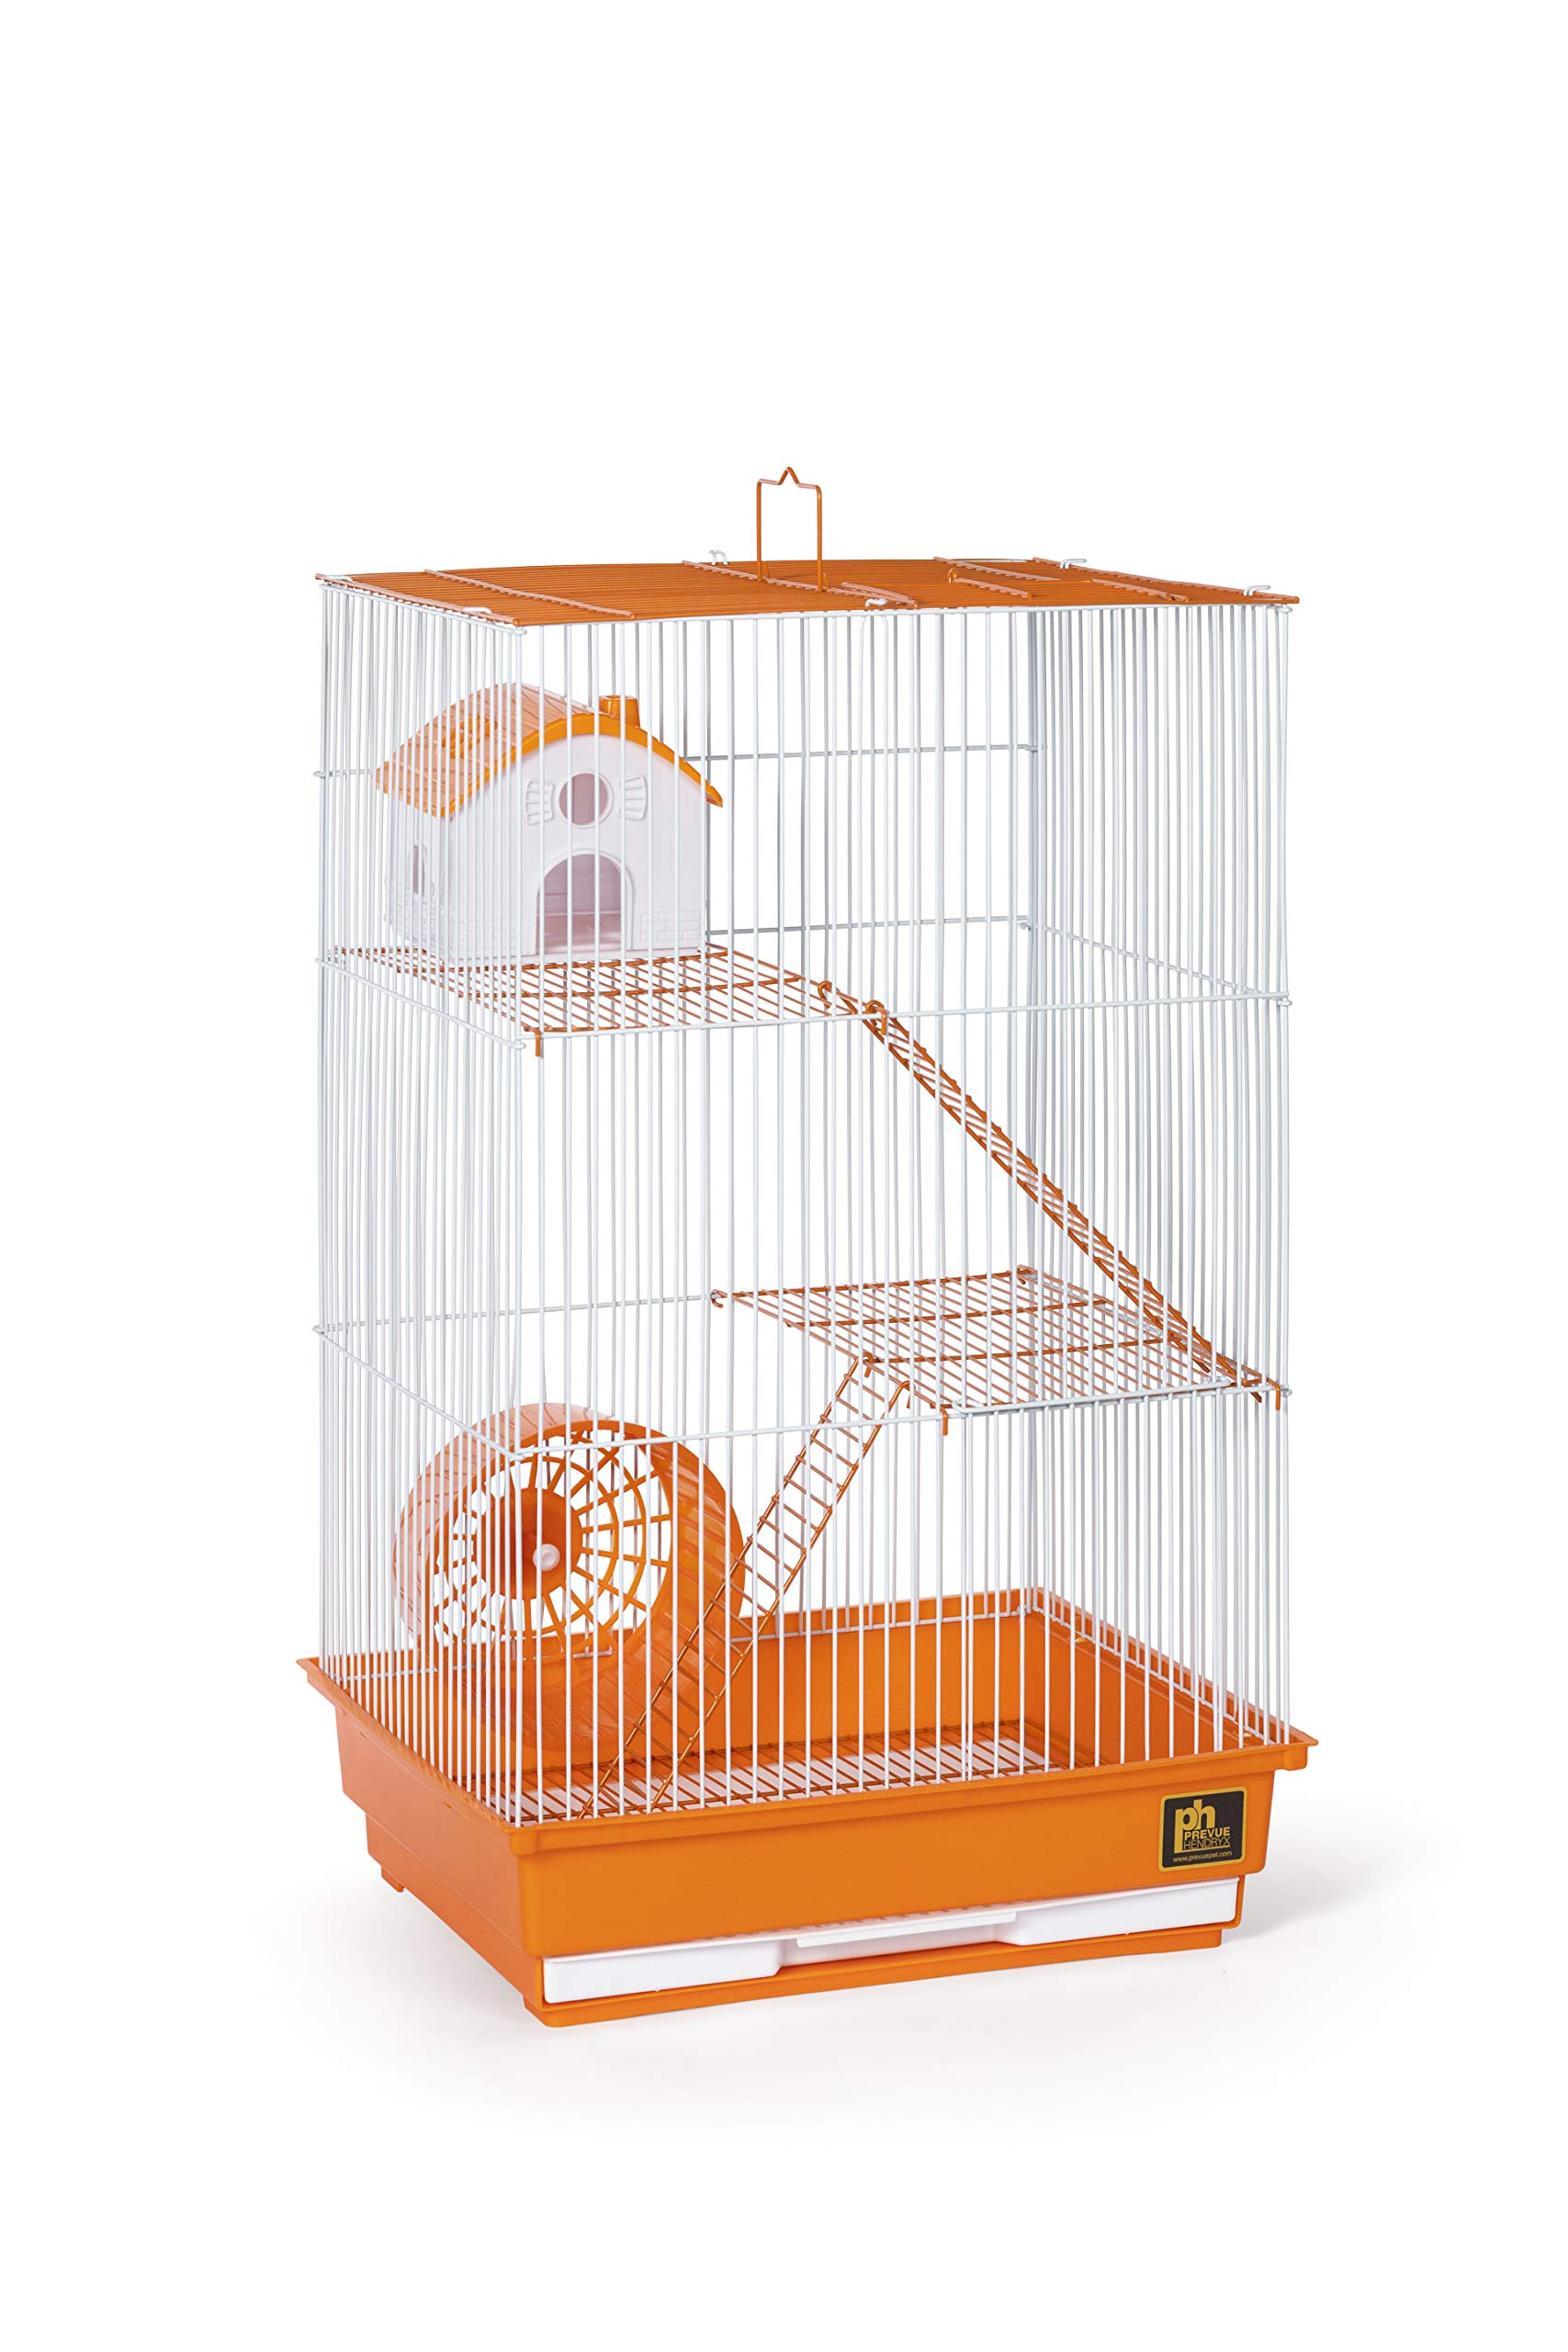 Prevue Pet Products Three-Story Hamster & Gerbil Cage Orange & White SP2030O by Prevue Pet Products (Image #2)